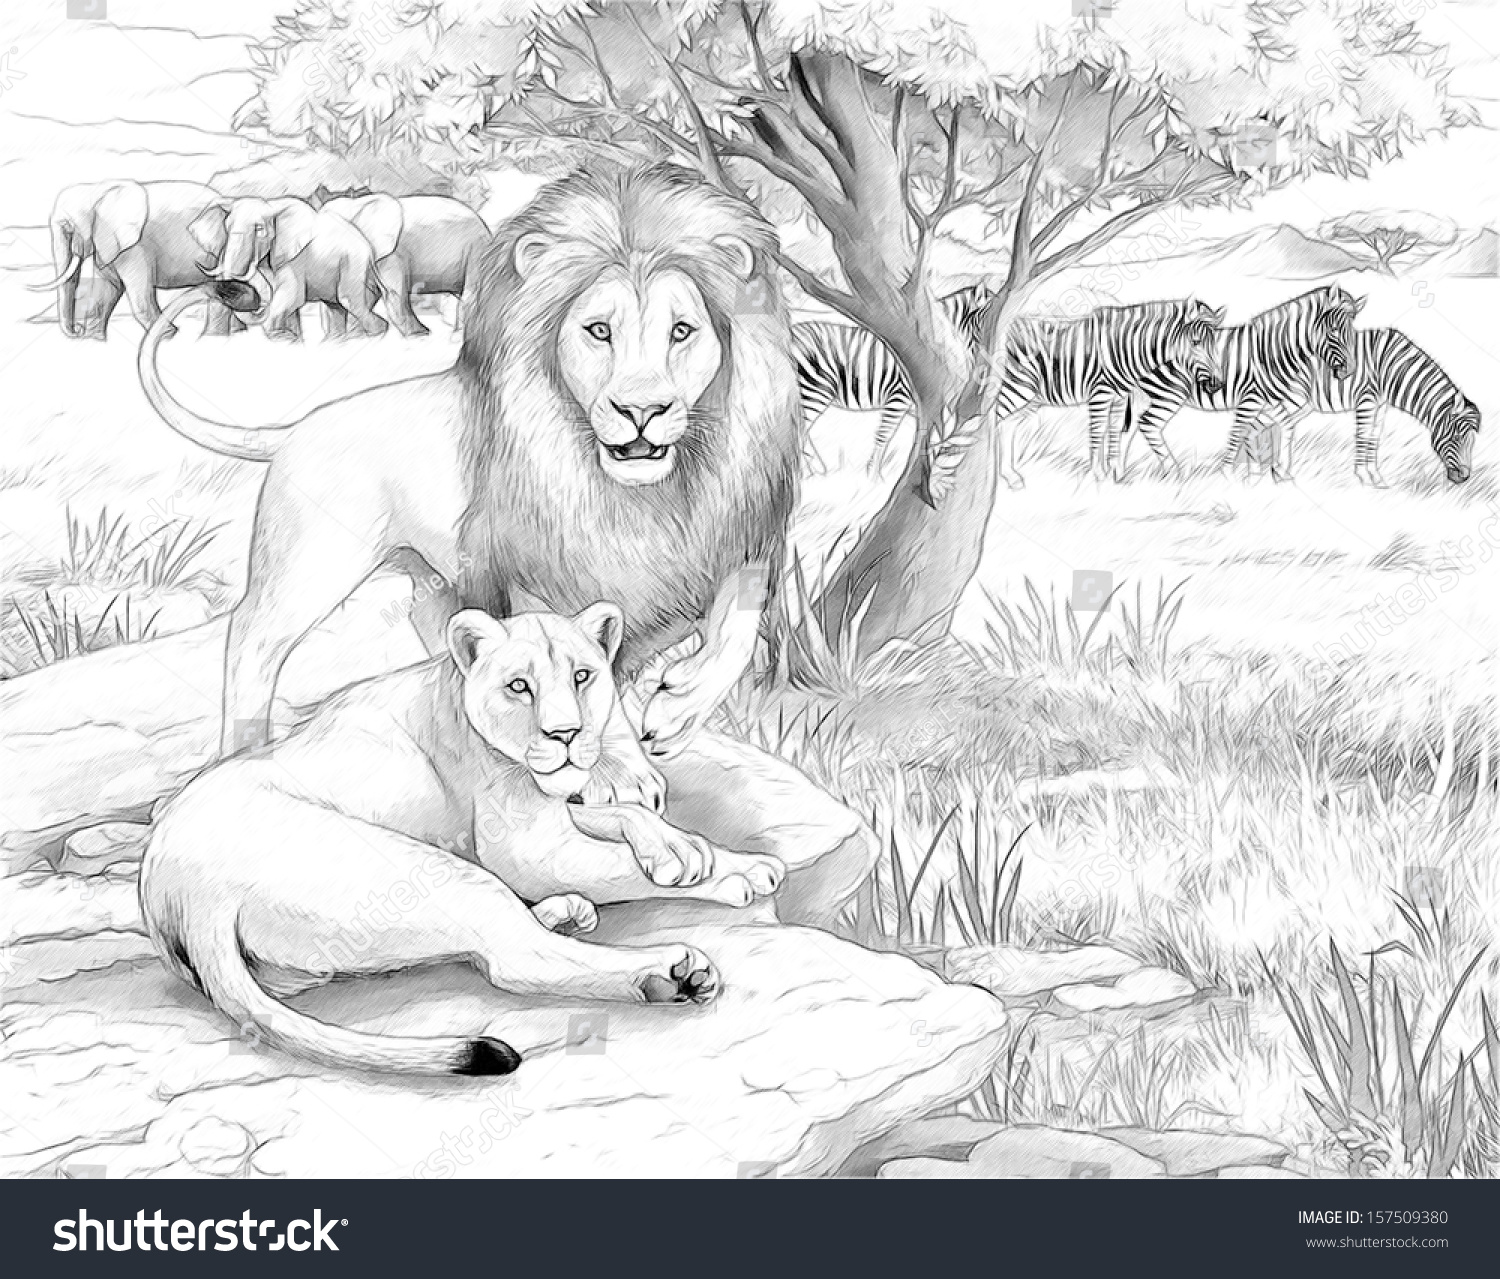 safari lion coloring page illustration for the children - Safari Coloring Pages